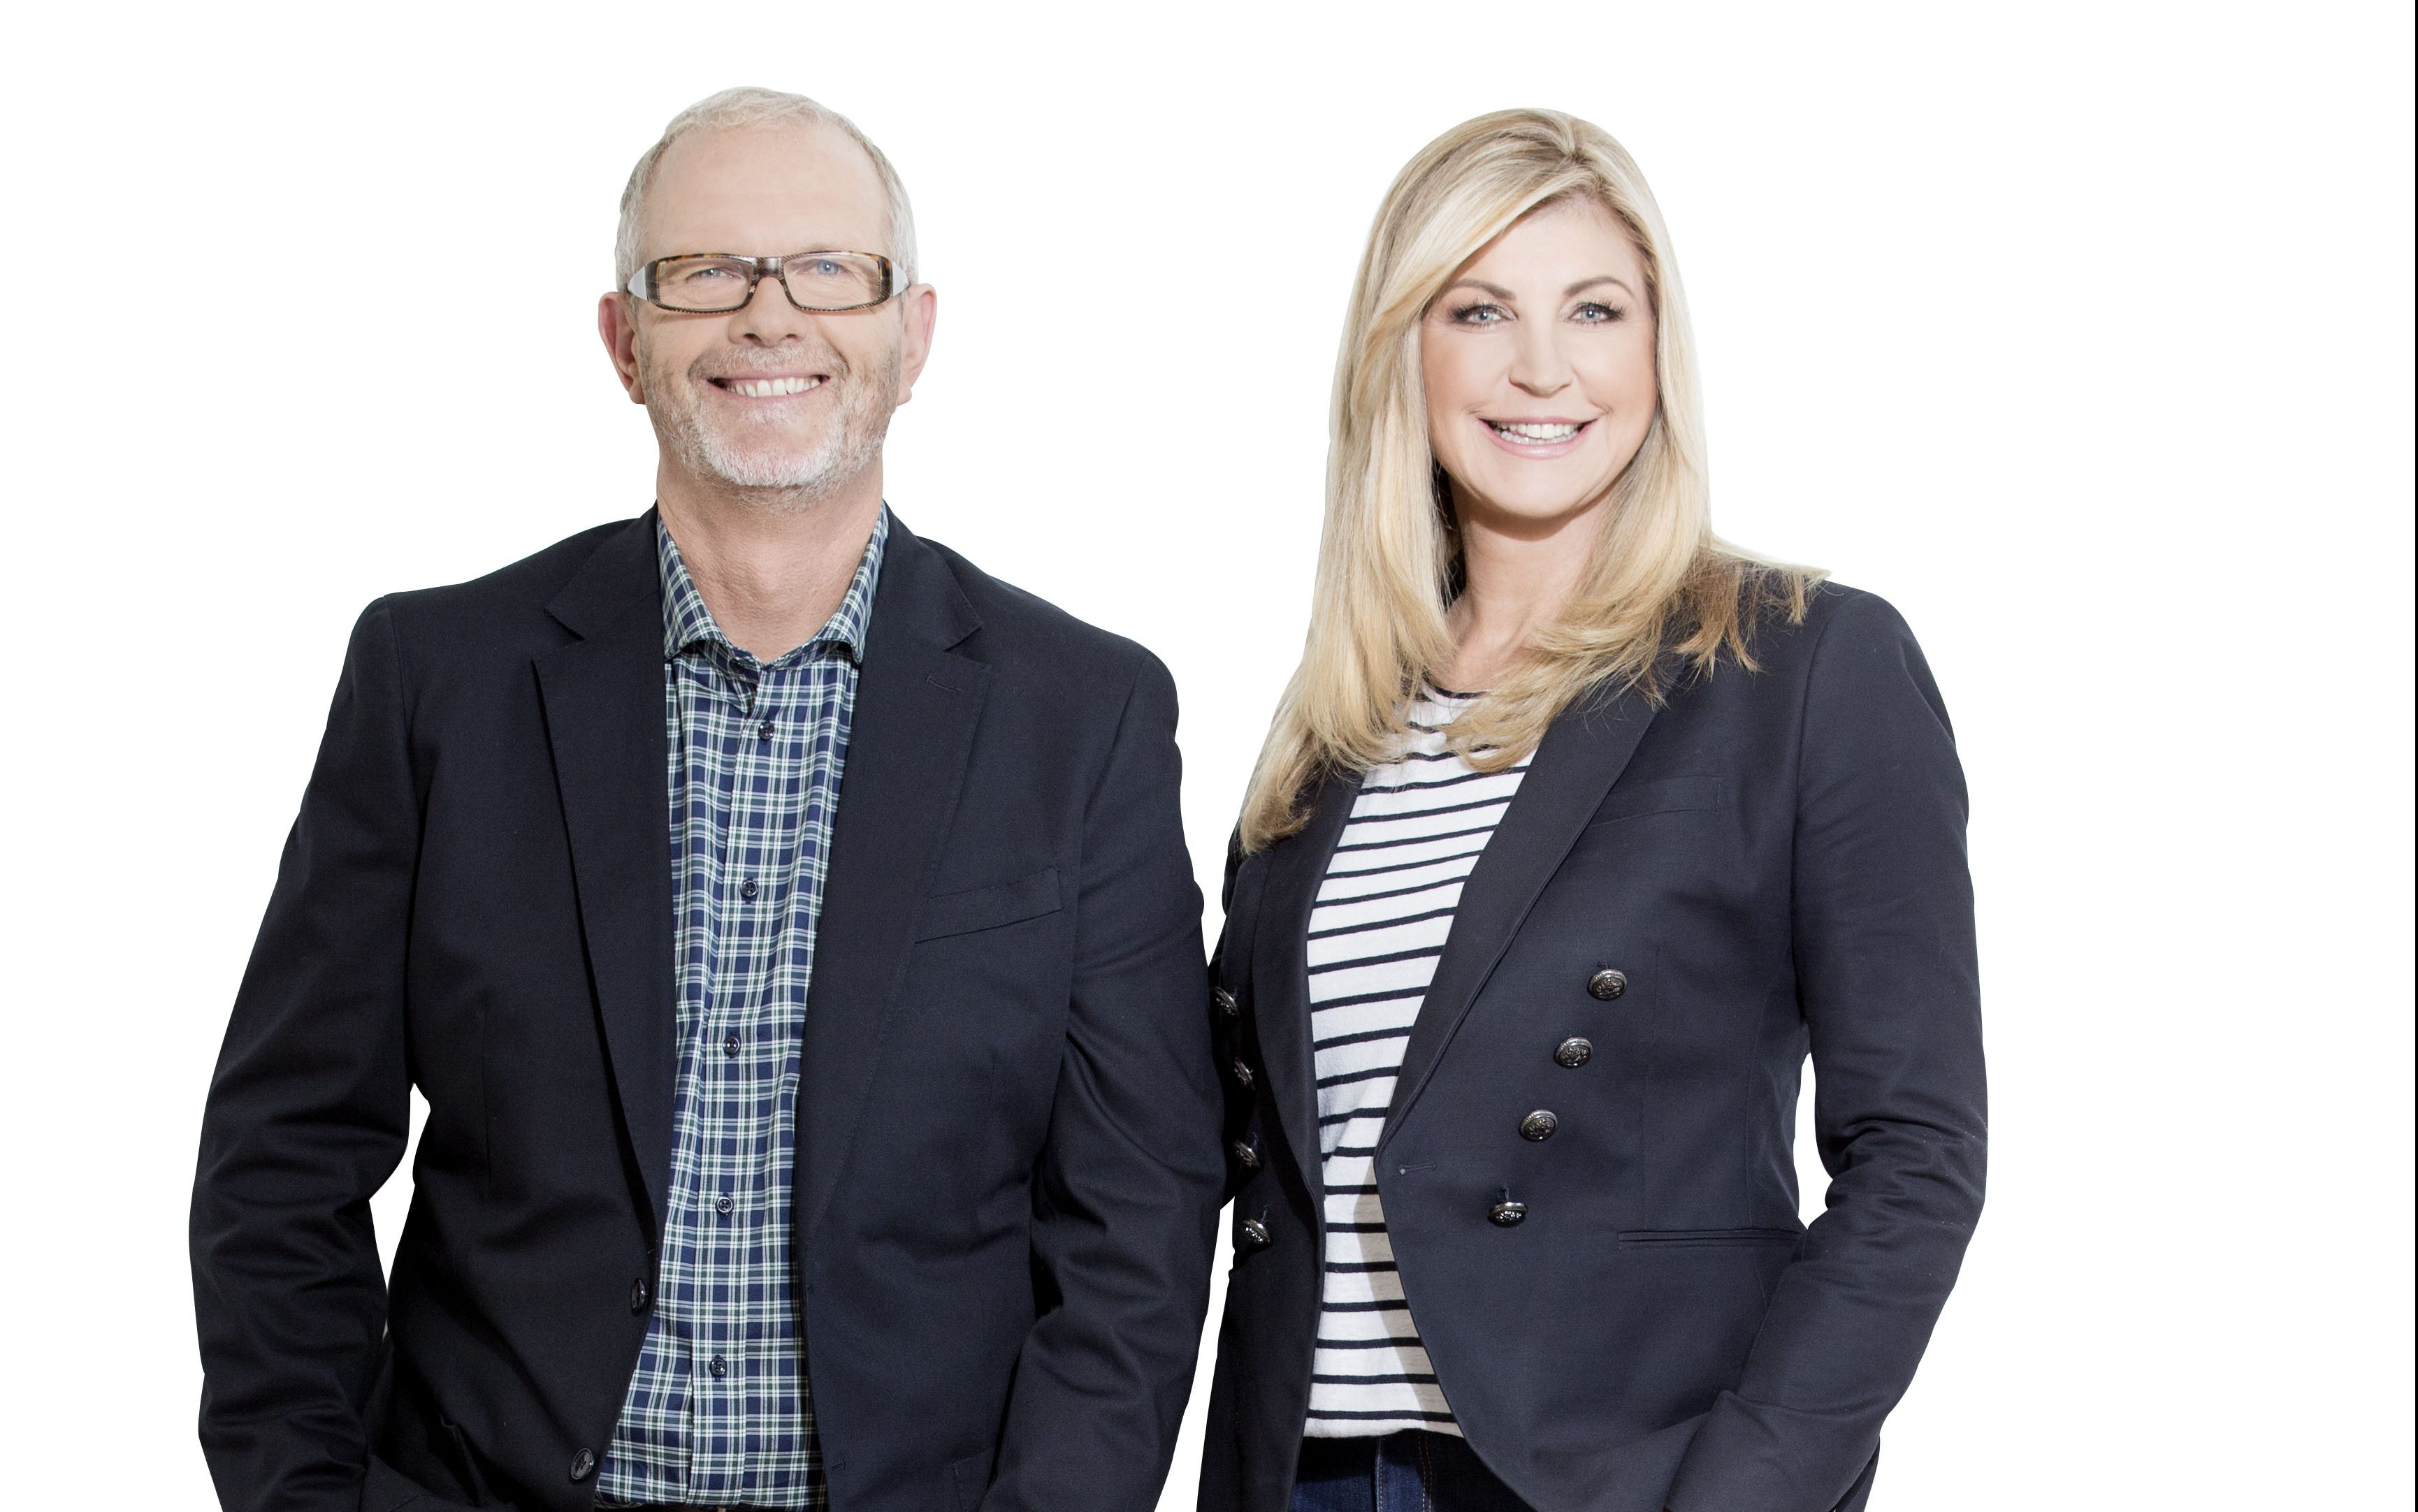 Smoothfm Celebrates Seven Years On Air